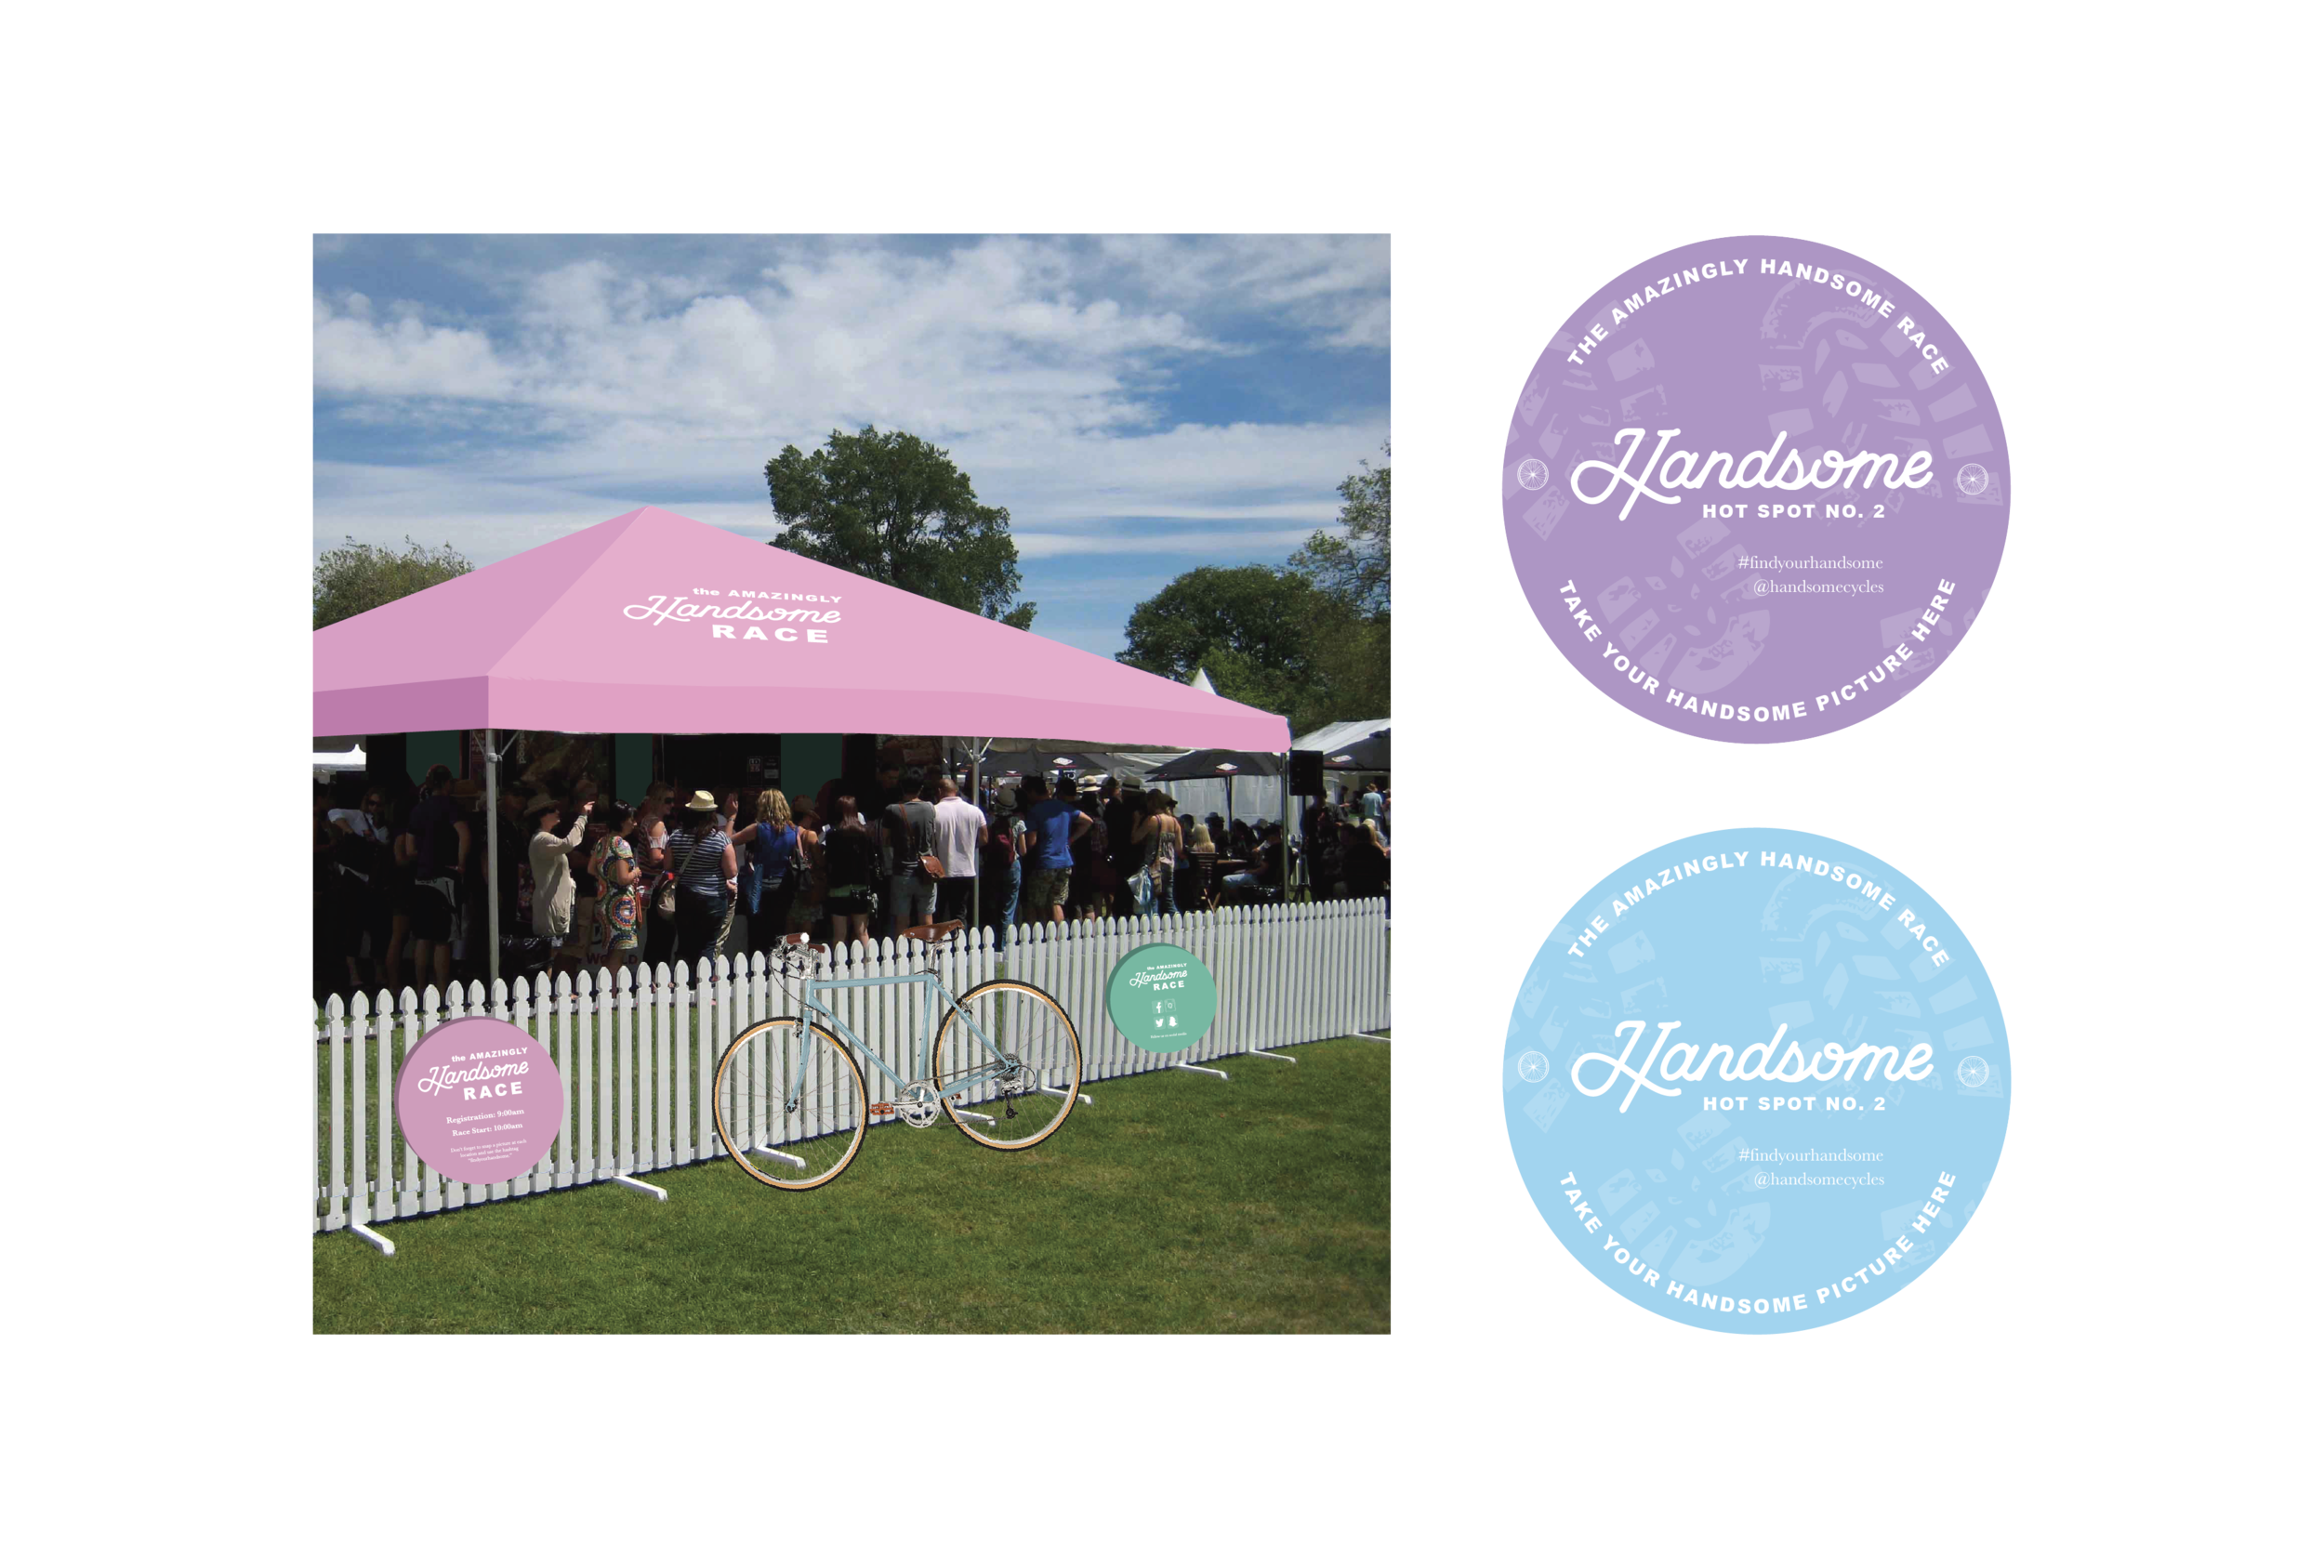 "As an overall brand experience, Handsome sponsors a ""Amazingly Handsome Race"" each year, which encourages friends or couples to race against others to find ""Hotspots"" around the city and connect with other like-minded casual bikers."